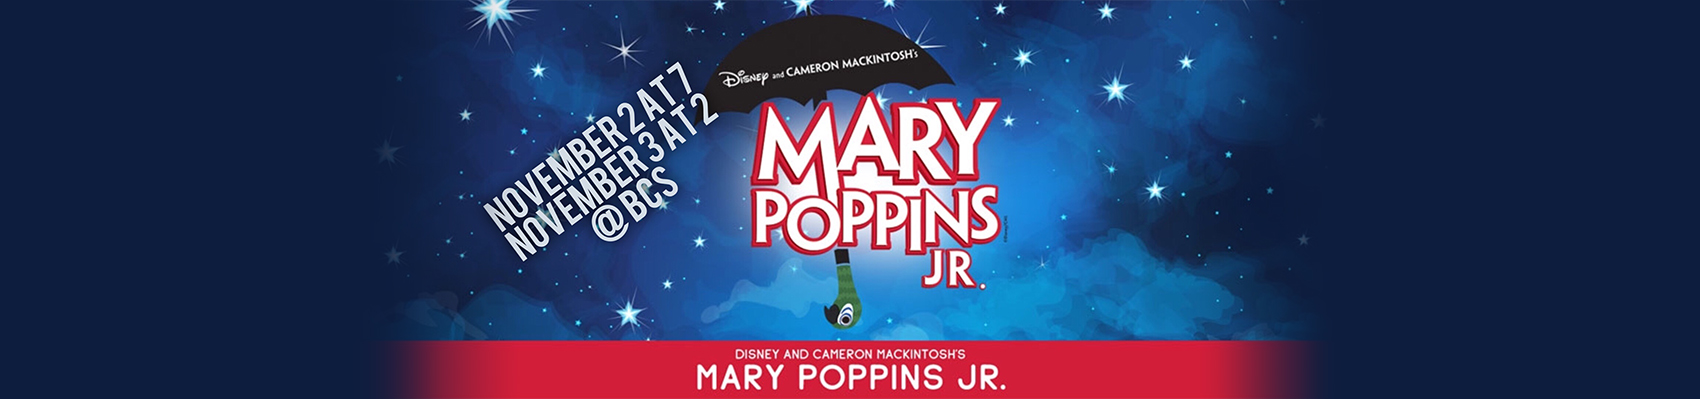 Disney and Cameron Mackintosh's Mary Poppins Jr. November 2 at 7. November 7 at 2. At BCS.